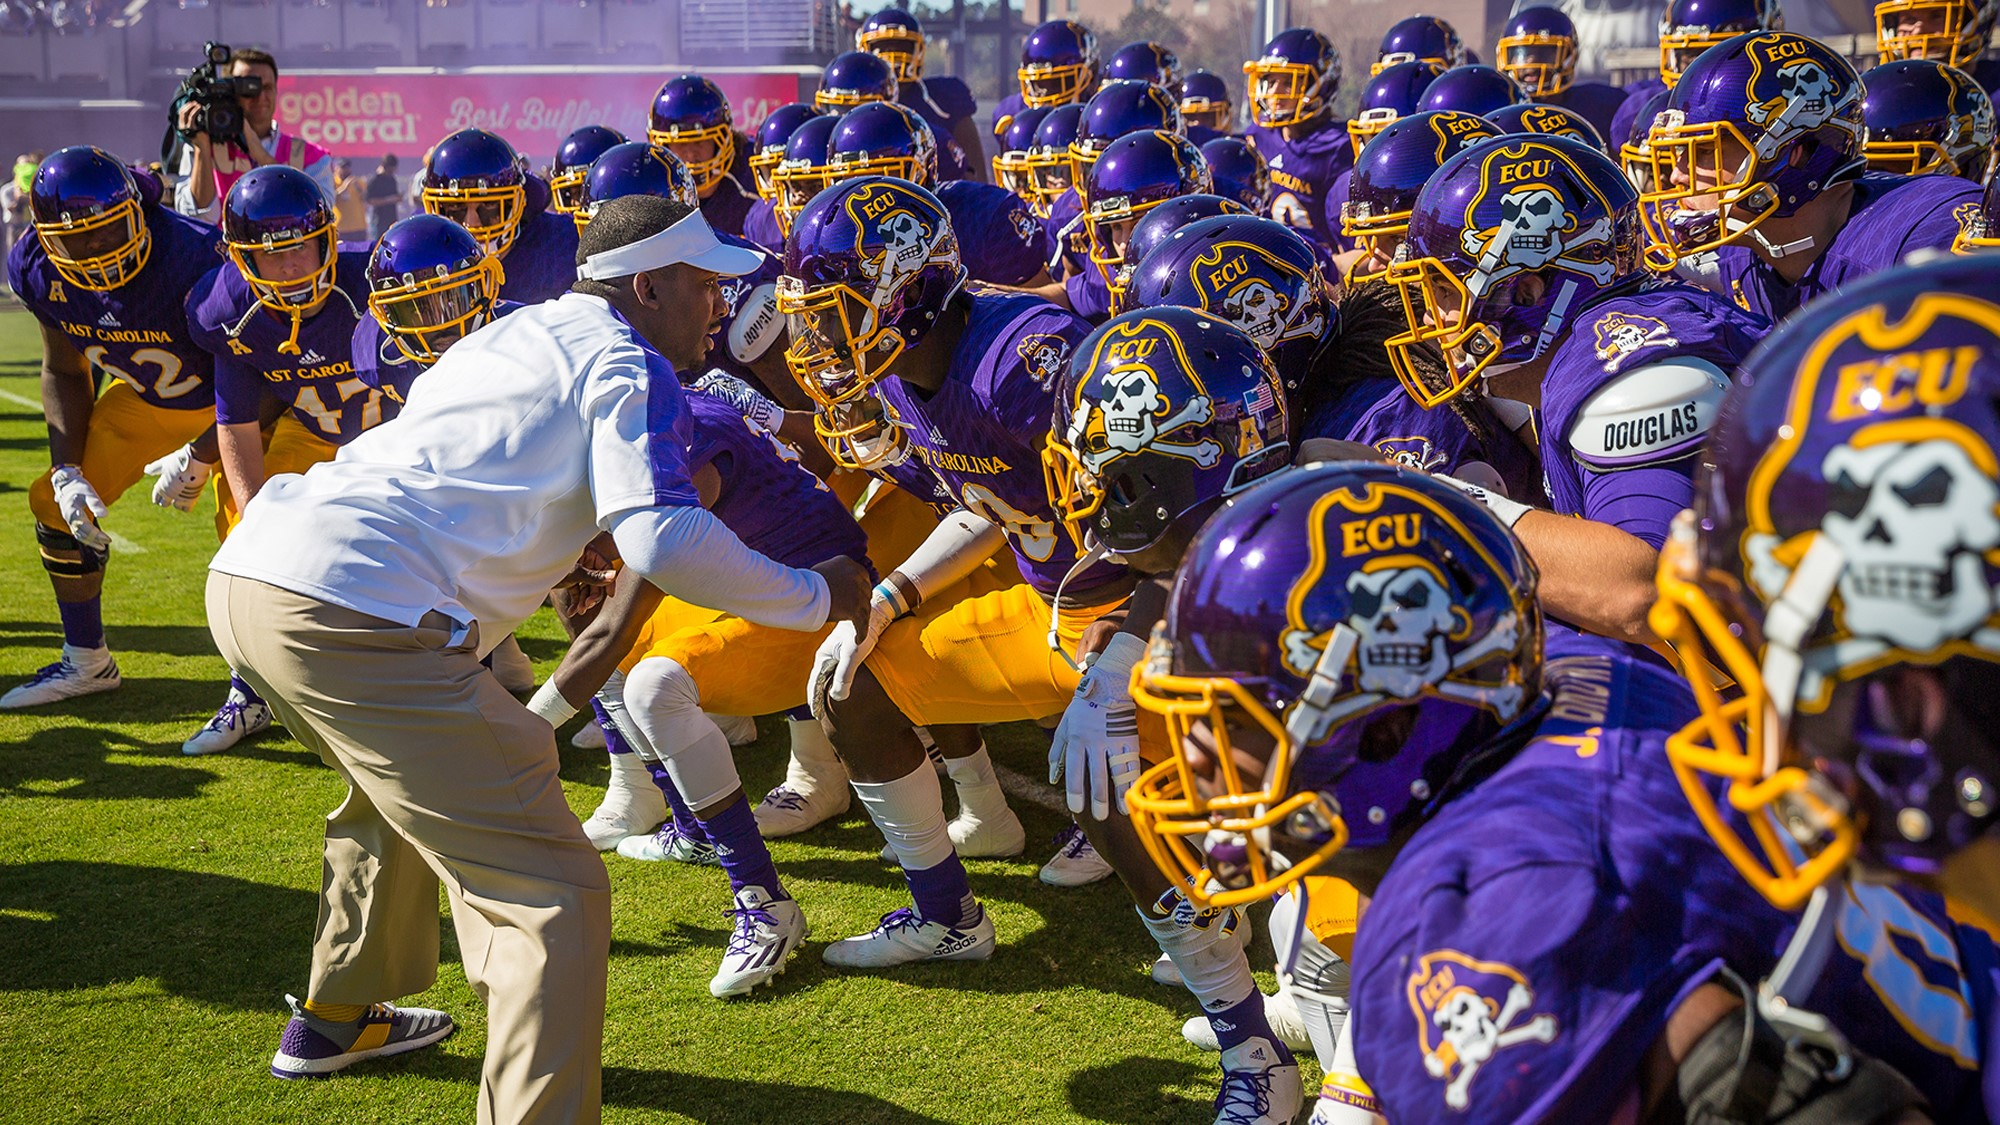 b805c67eb Things To Look For On ECU Football Gameday In 2017 - East Carolina ...